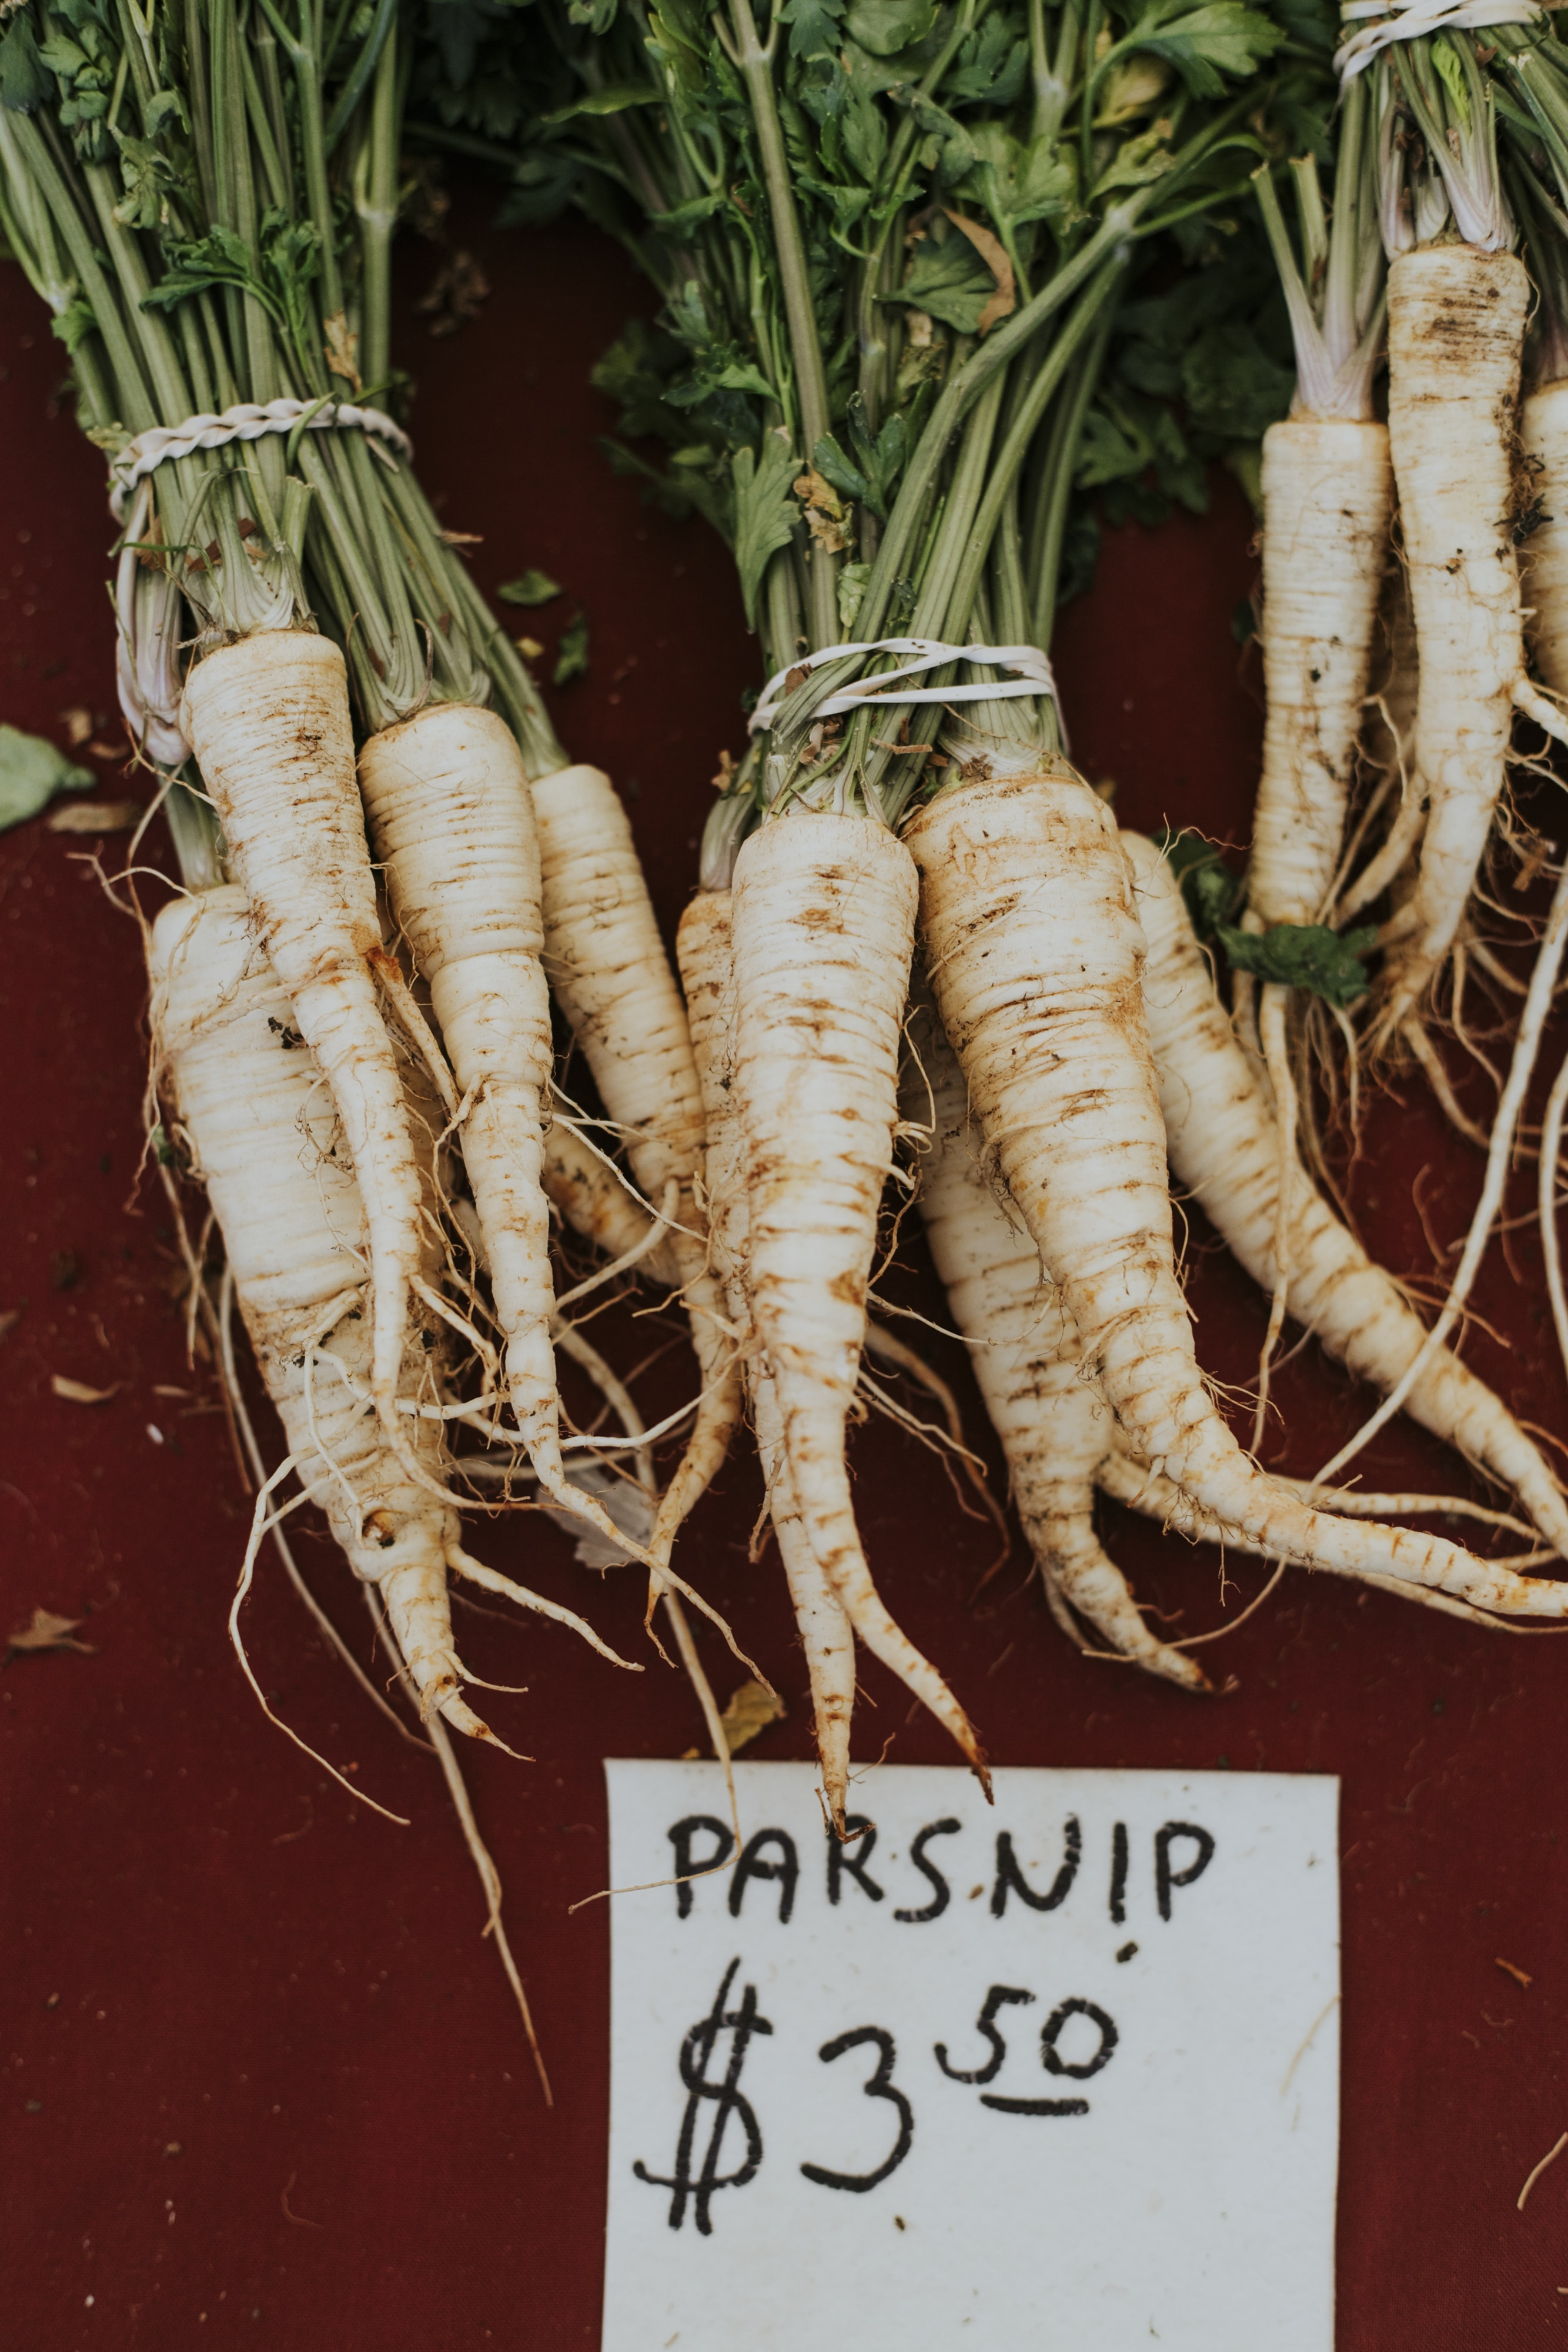 three bundles of parsnip